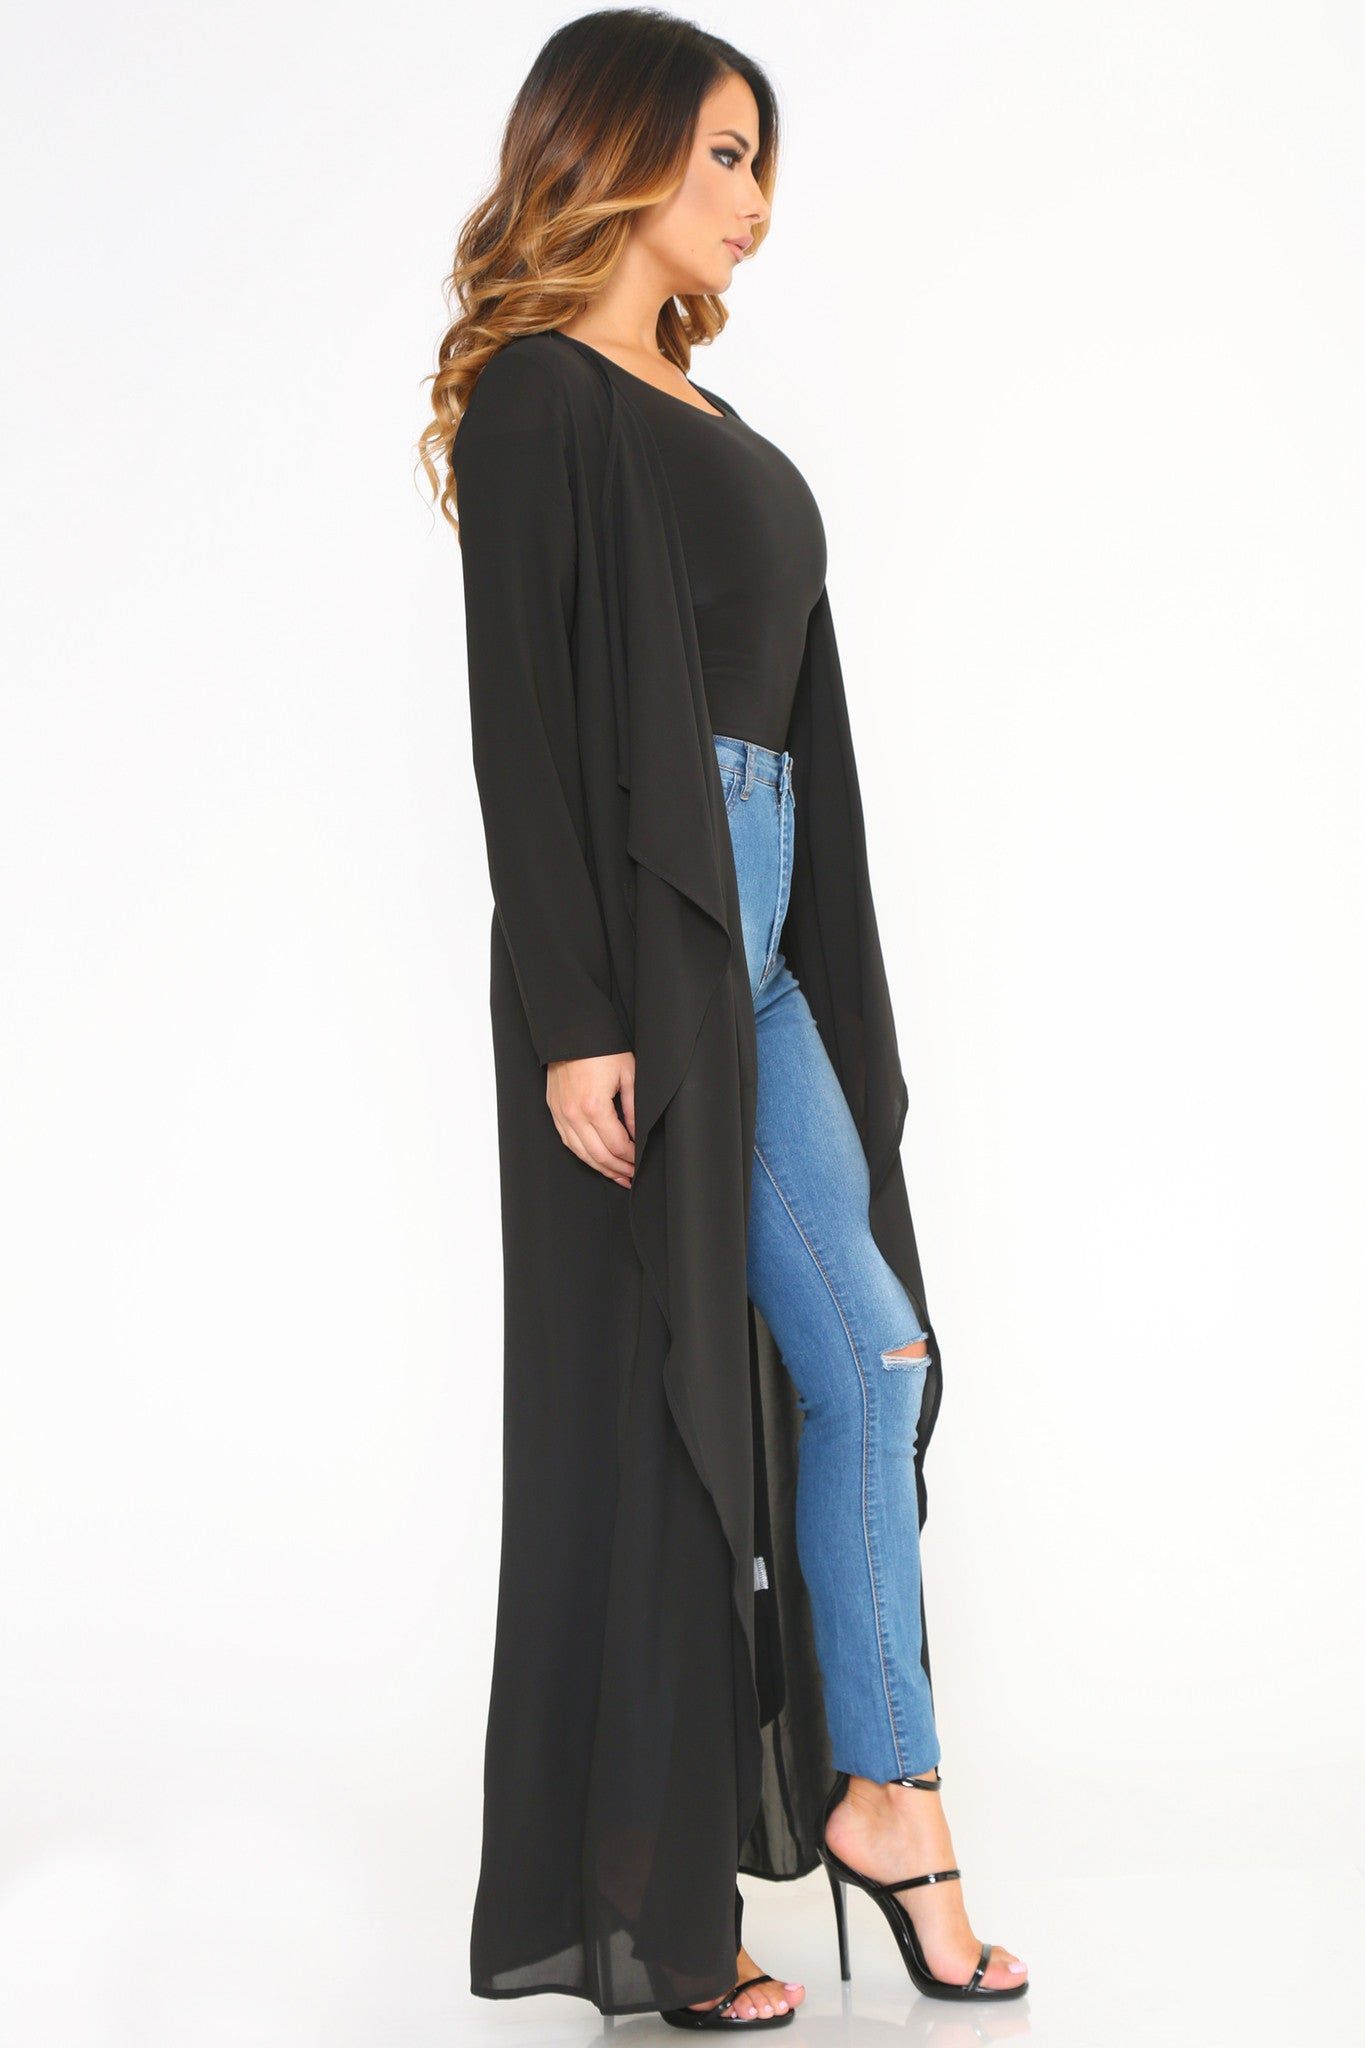 TAYLOR DUSTER CARDIGAN - Glam Envy - 2